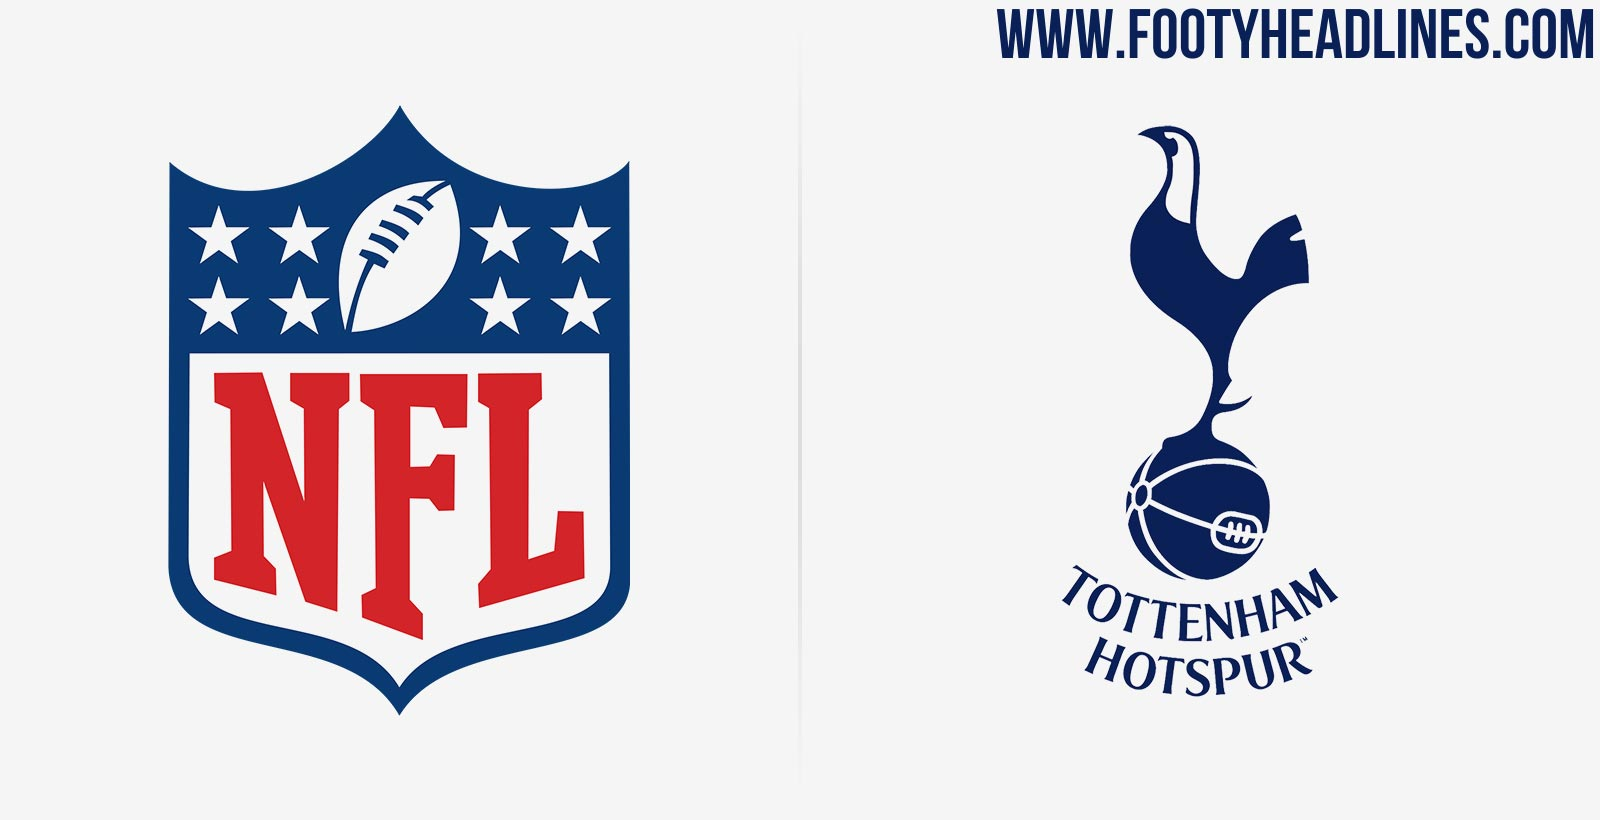 Nike to Release Full Tottenham Hotspur NFL Collection ...